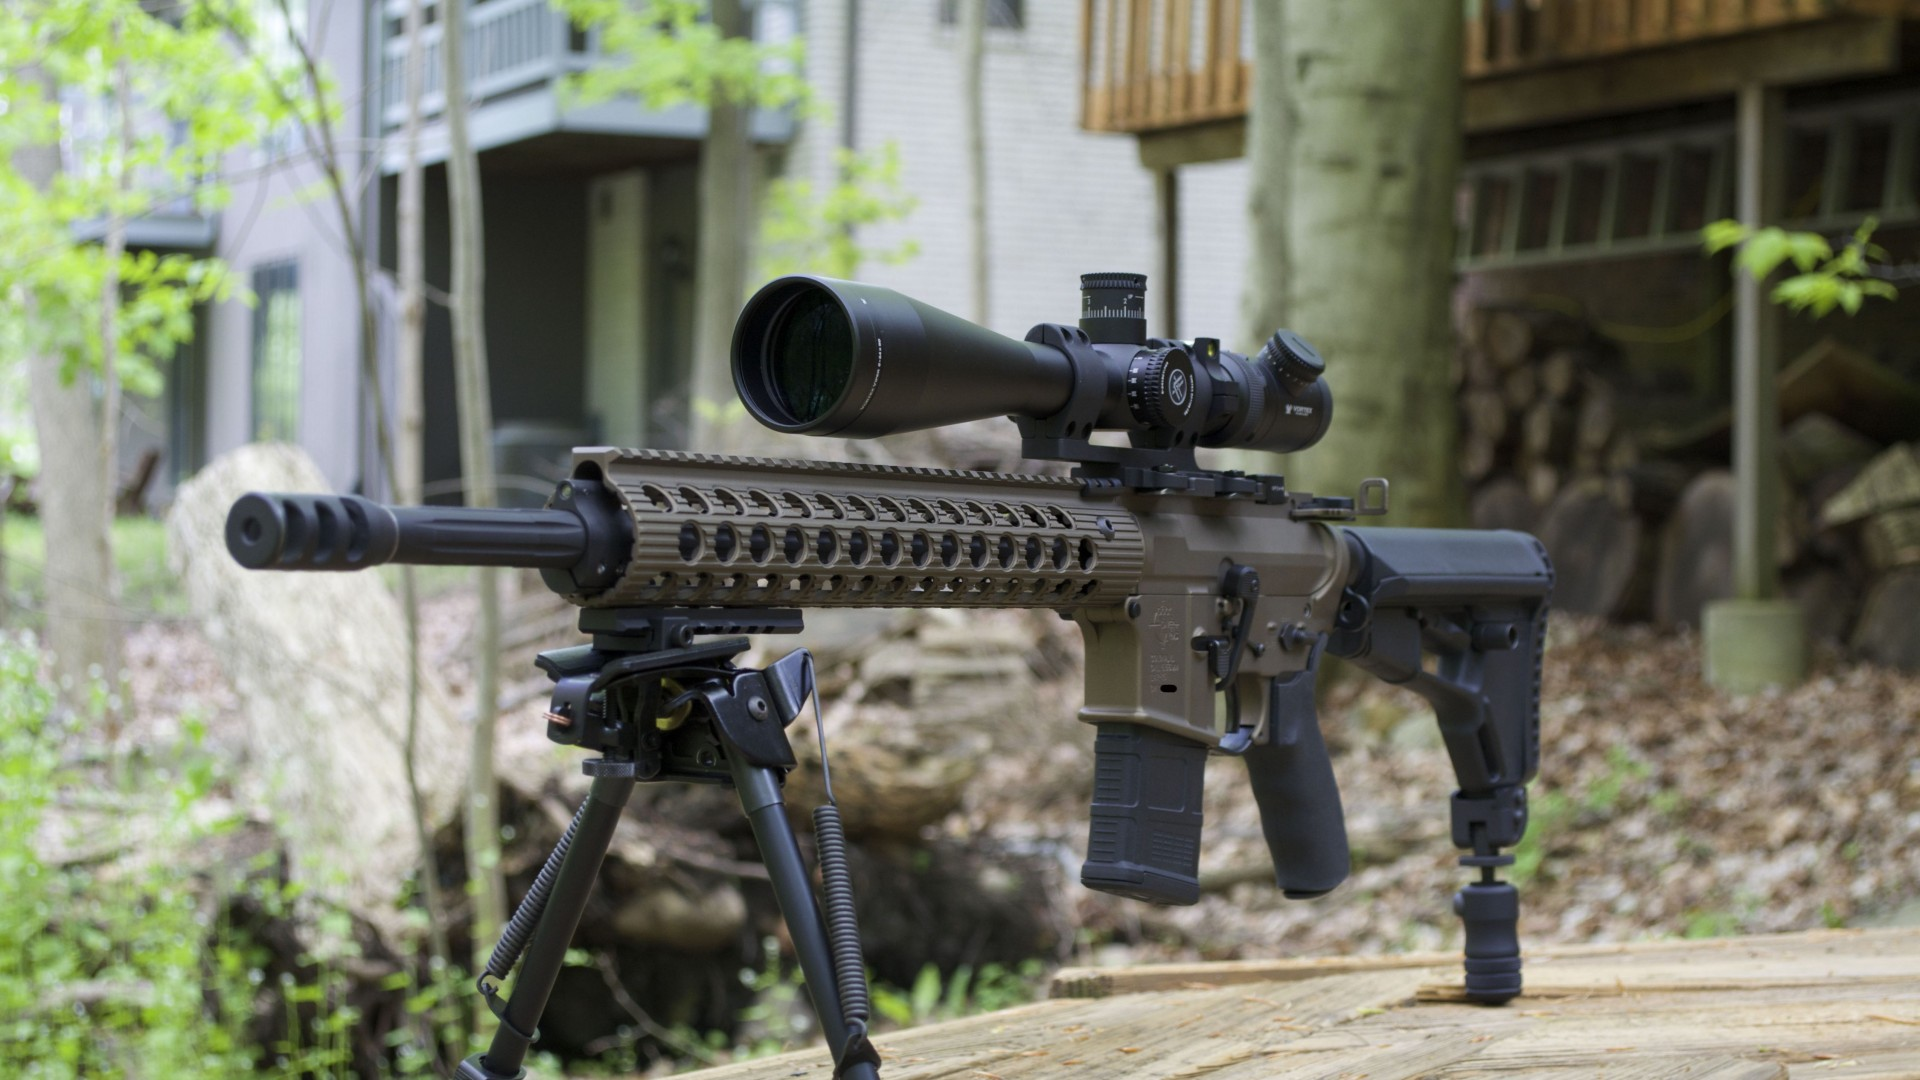 AR-15, rifle, custom, semi-automatic, multicam, camo, scope (horizontal)